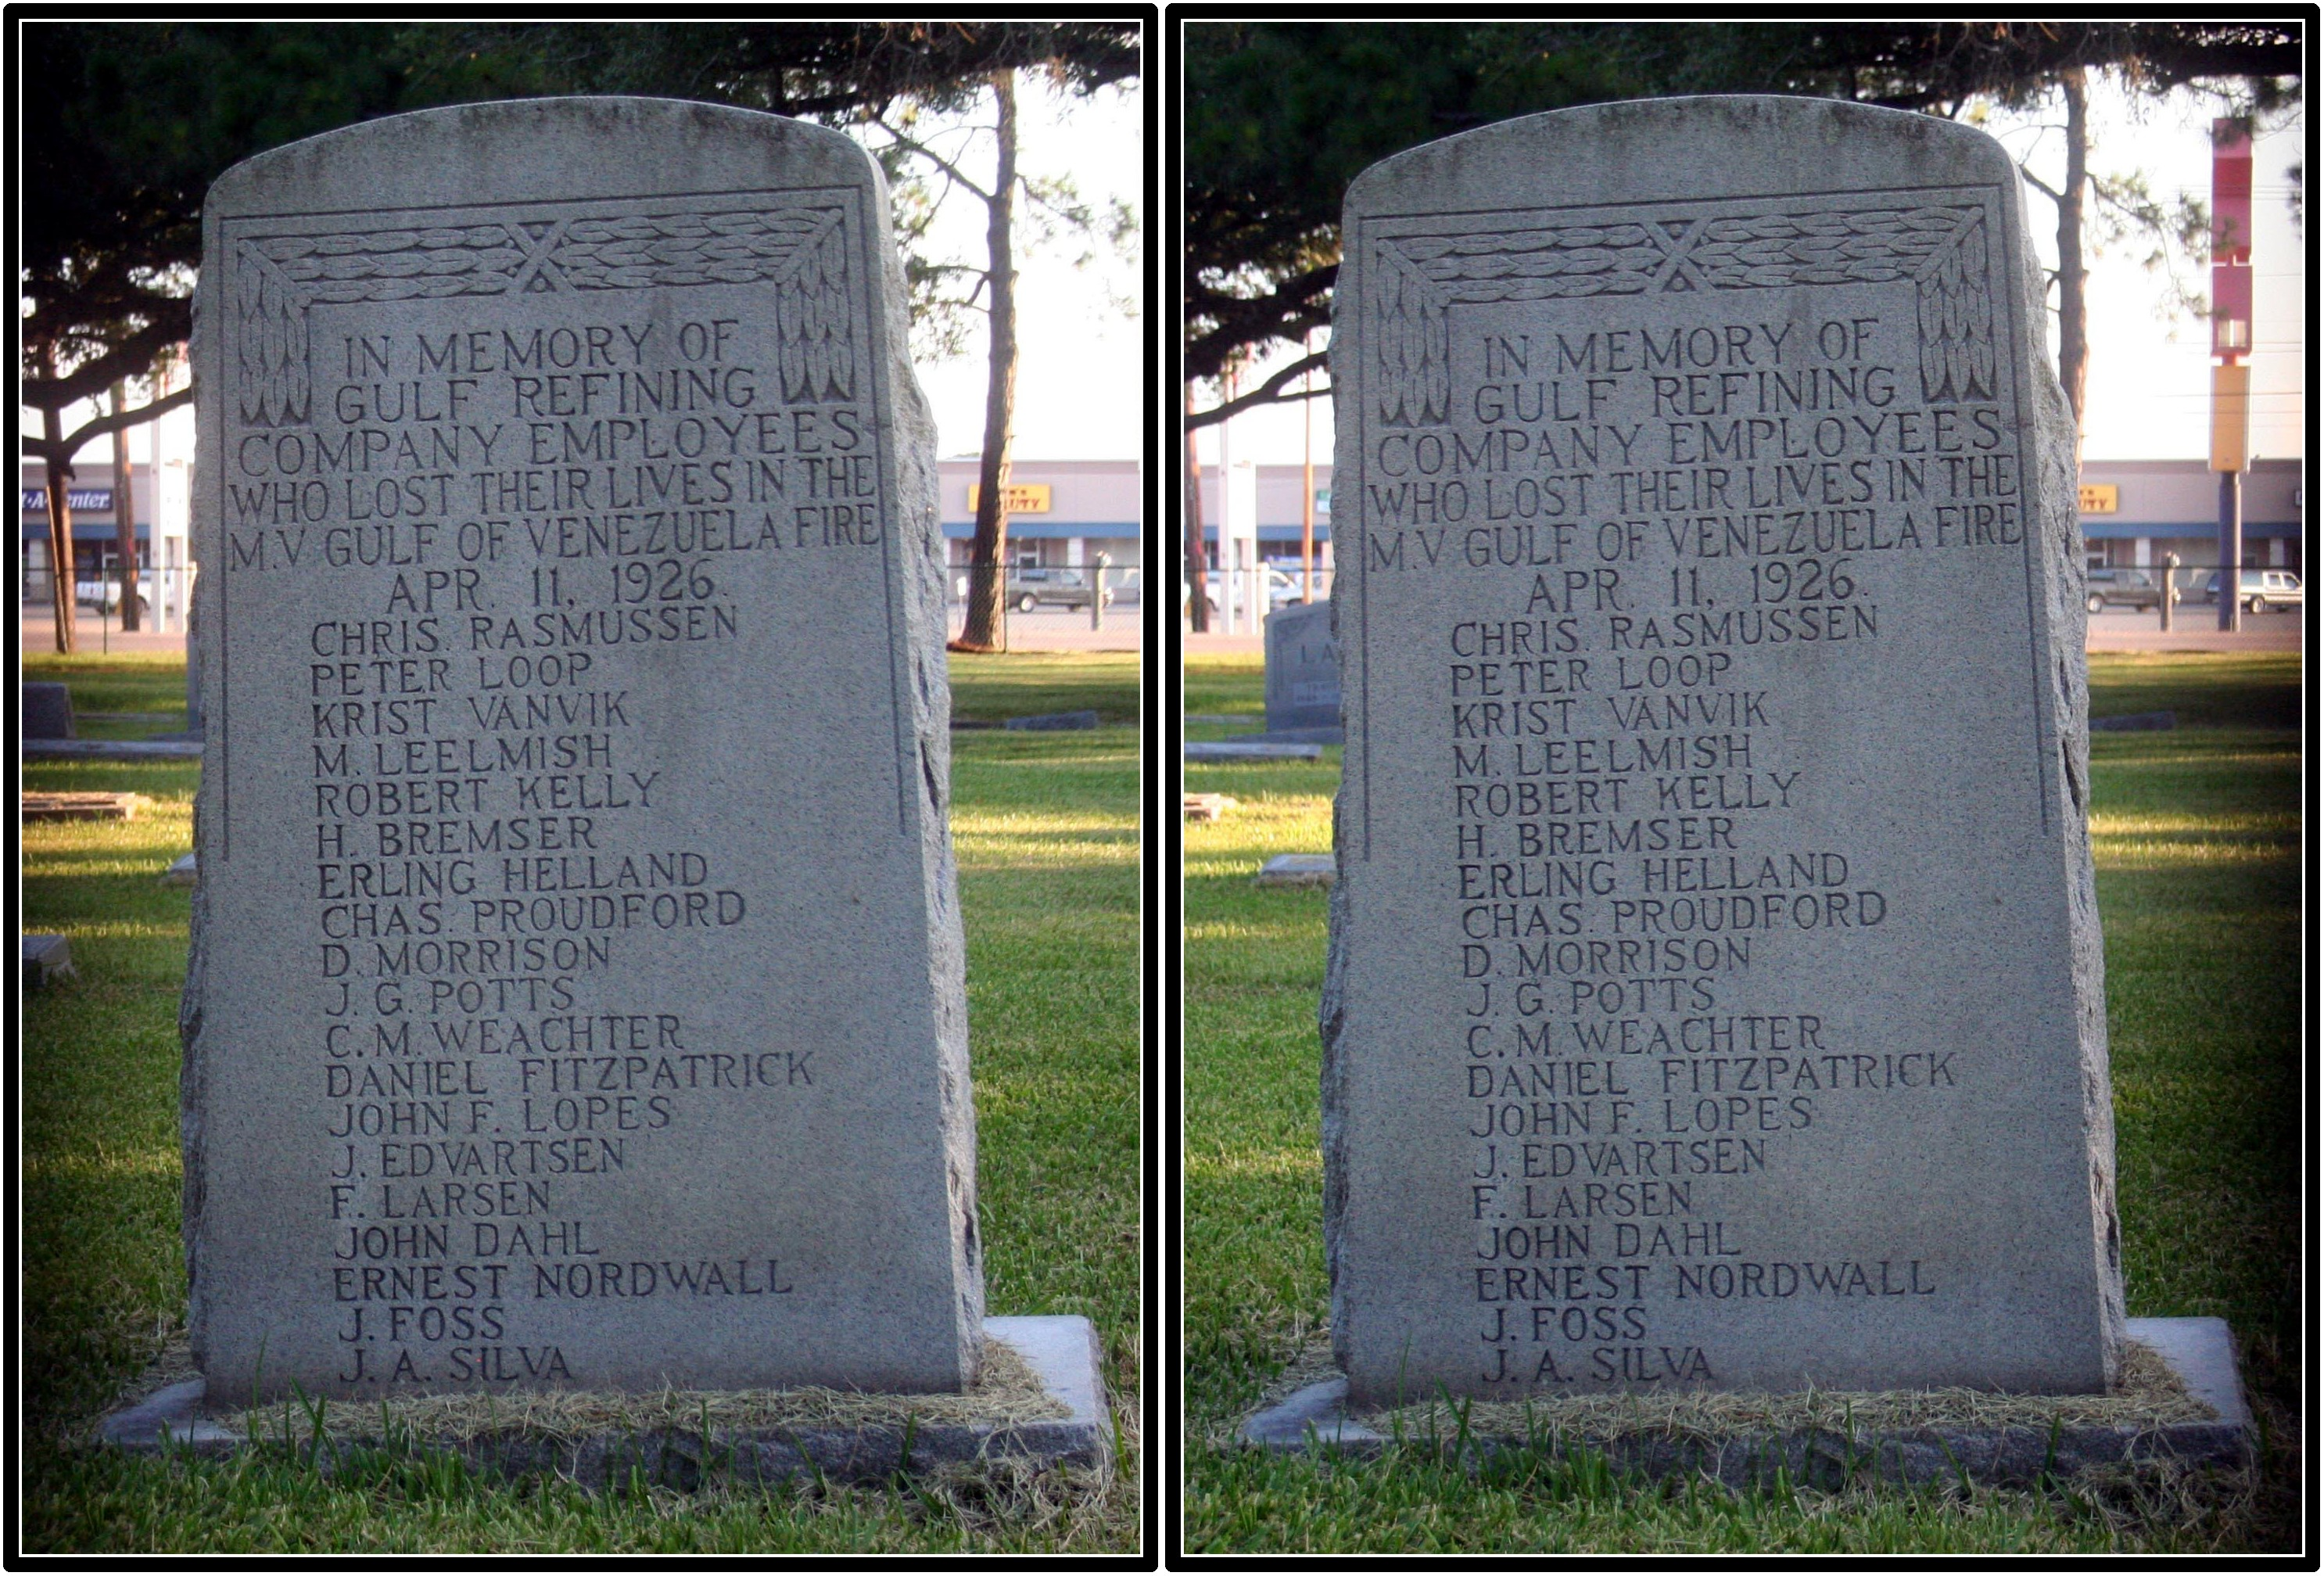 Groves (TX) United States  city photos gallery : Greenlawn Memorial Park, Groves, Jefferson Co., Texas 2008… | Flickr ...